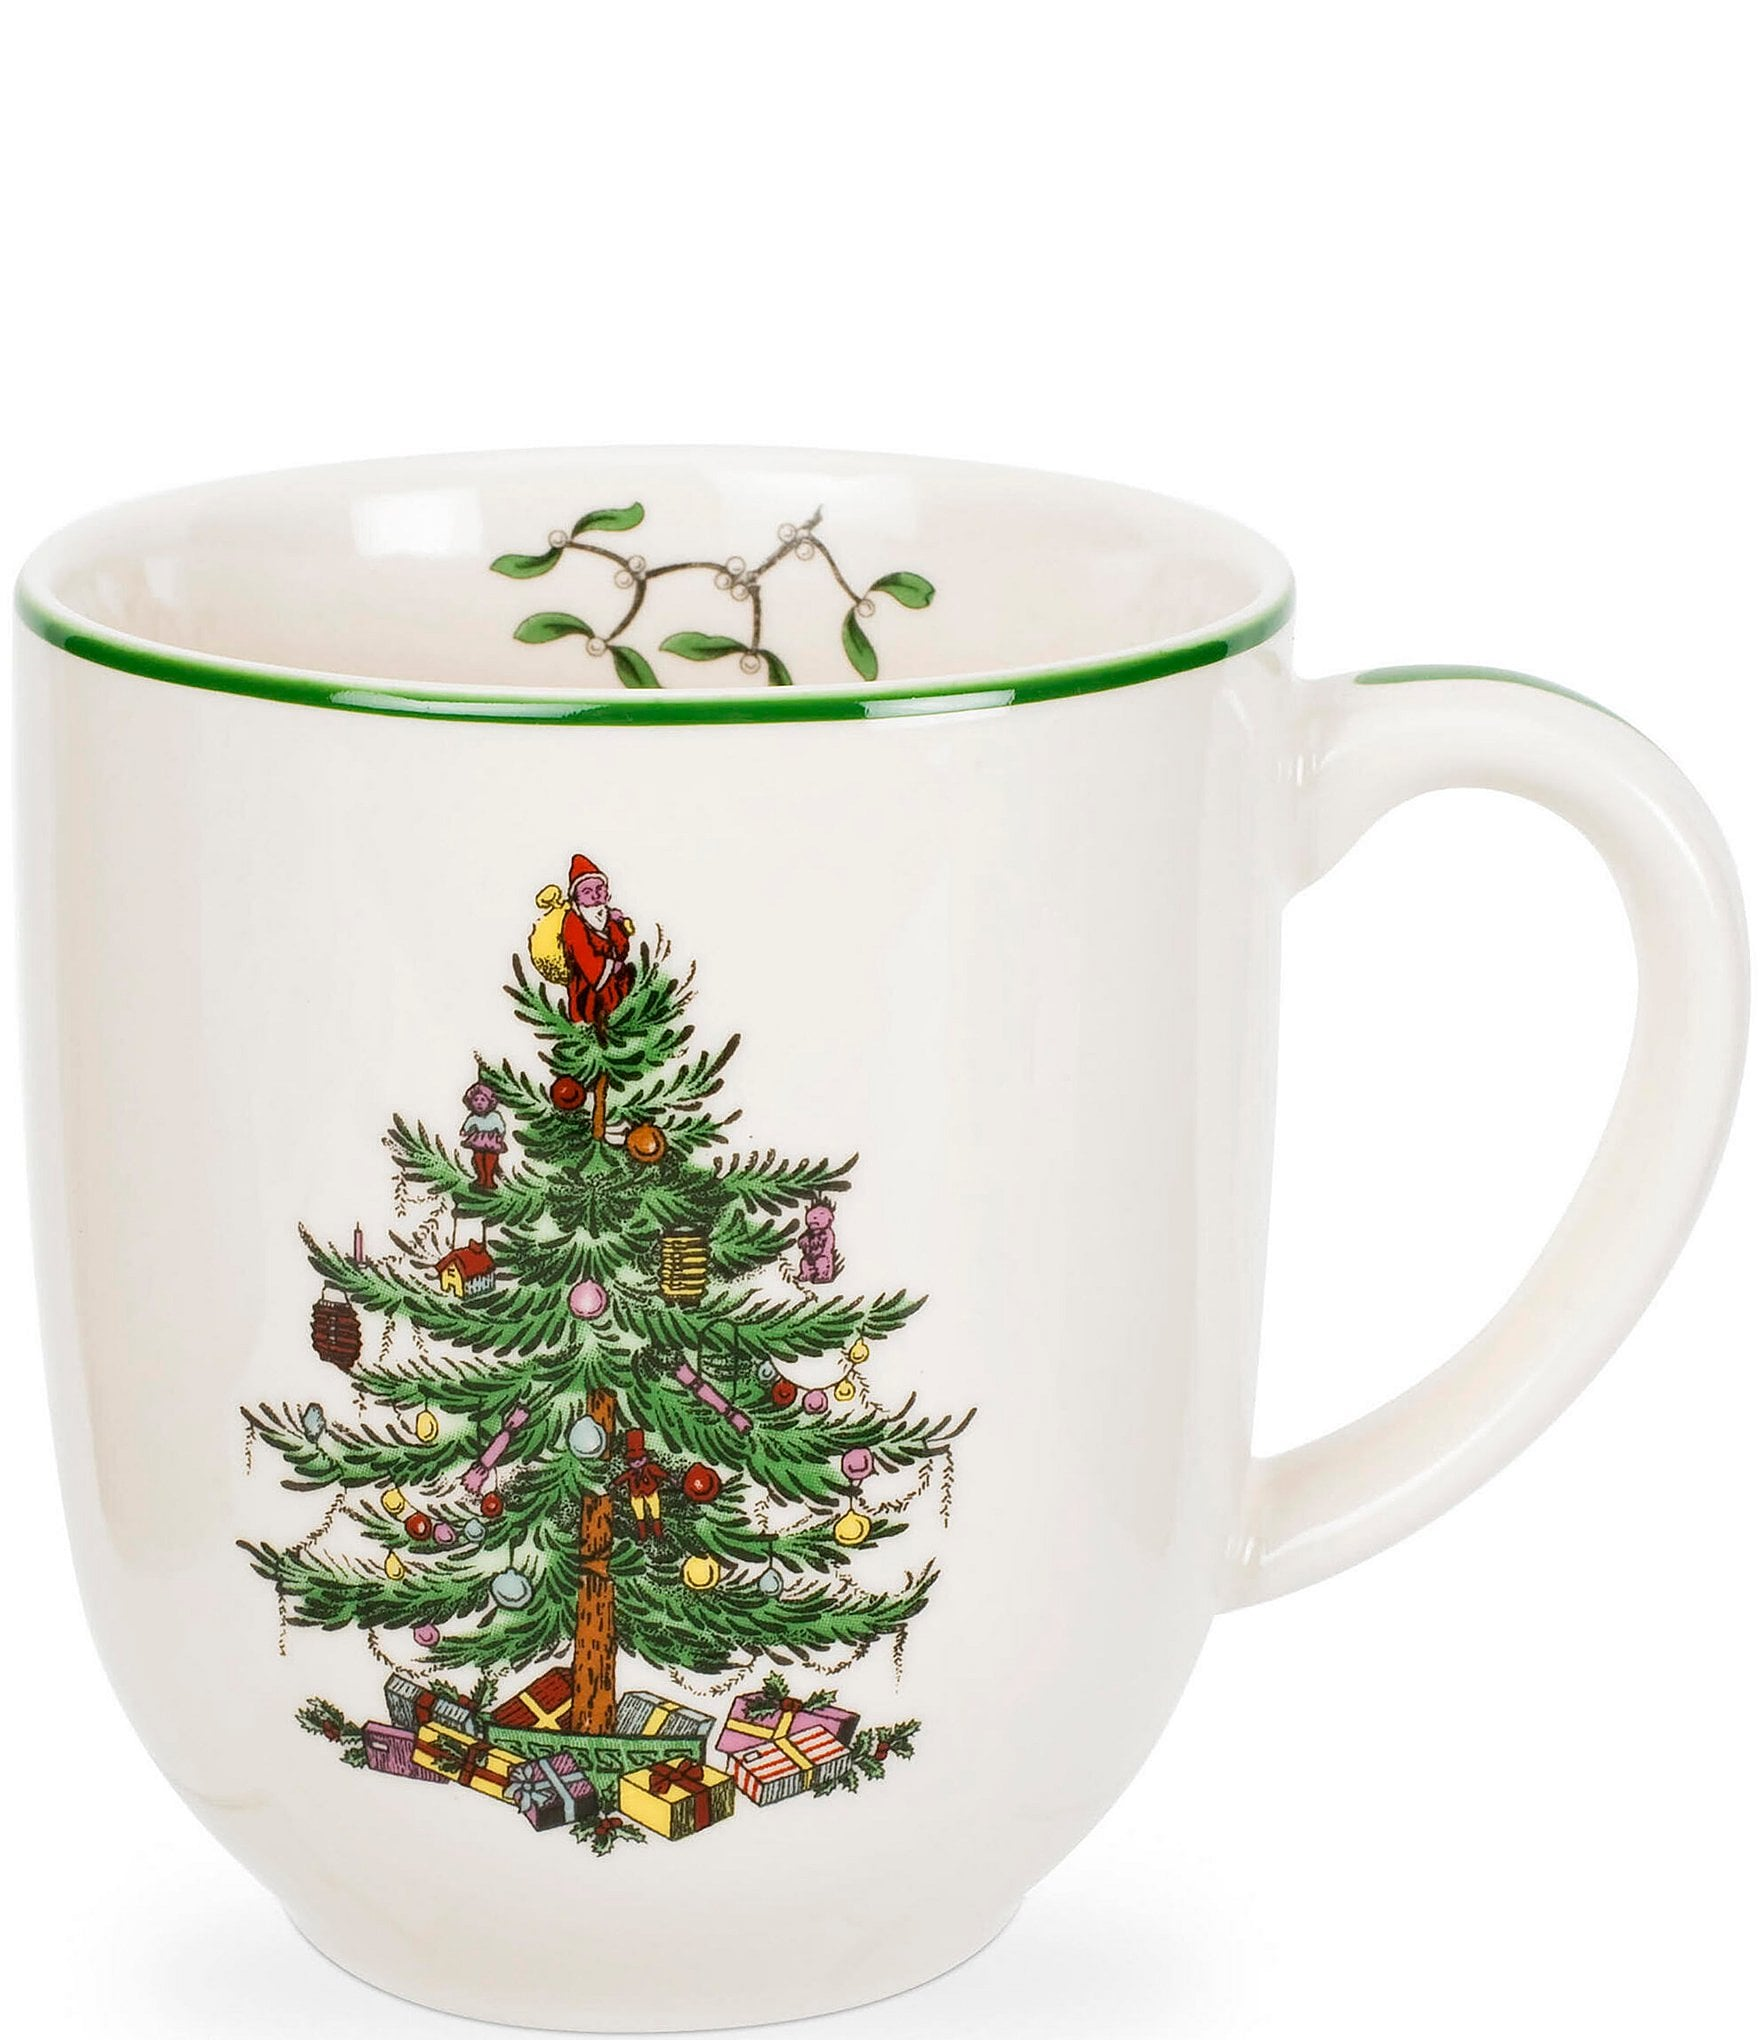 Spode Christmas Tree China Sale: Spode Christmas Tree China 14-oz. Cafe Mug